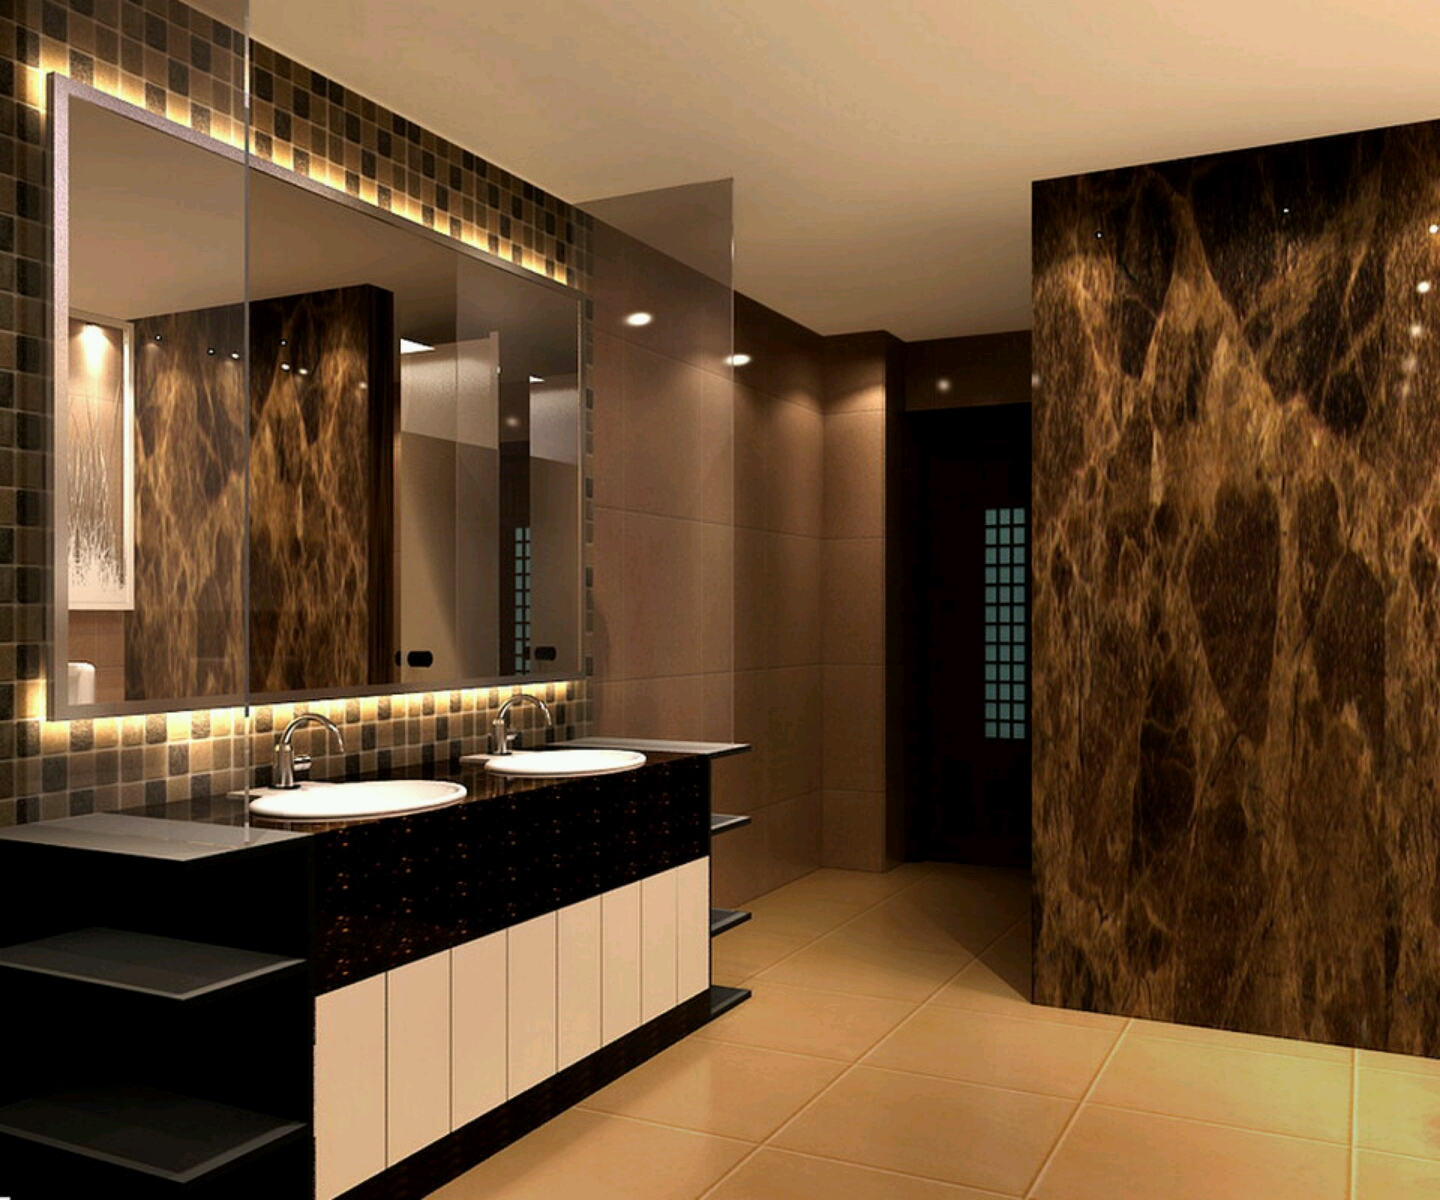 New home designs latest modern homes modern bathrooms for Stylish home design ideas